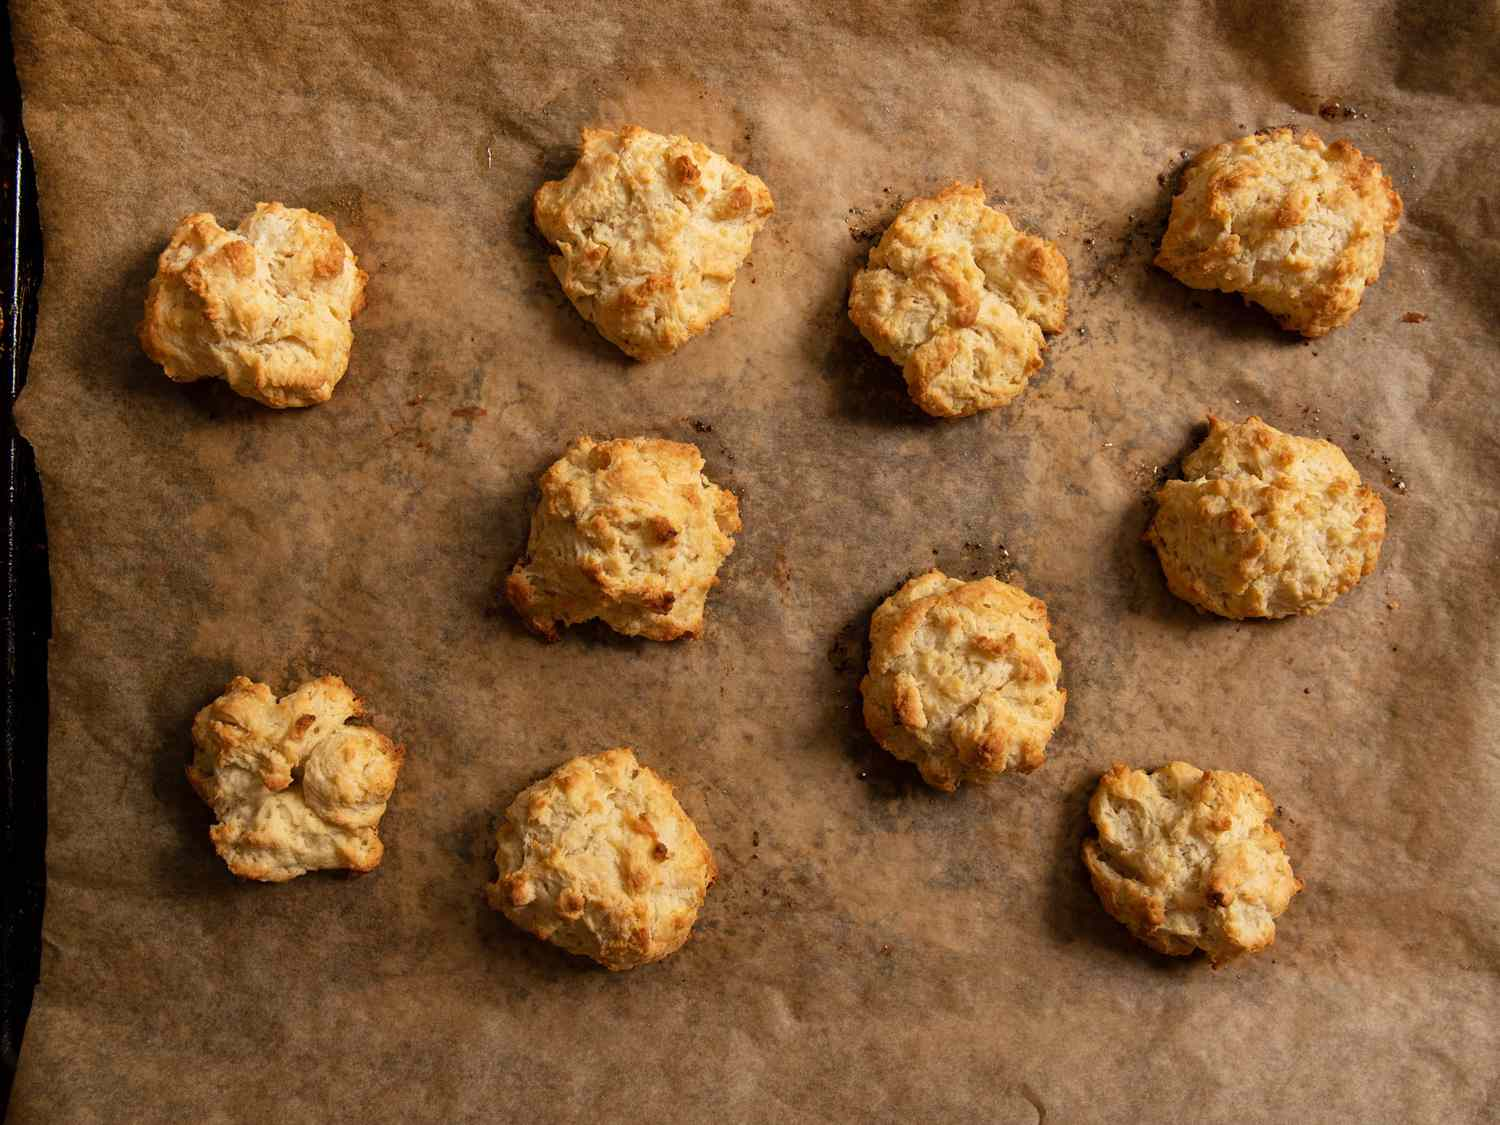 Baked drop biscuits on a parchment-lined baking sheet.